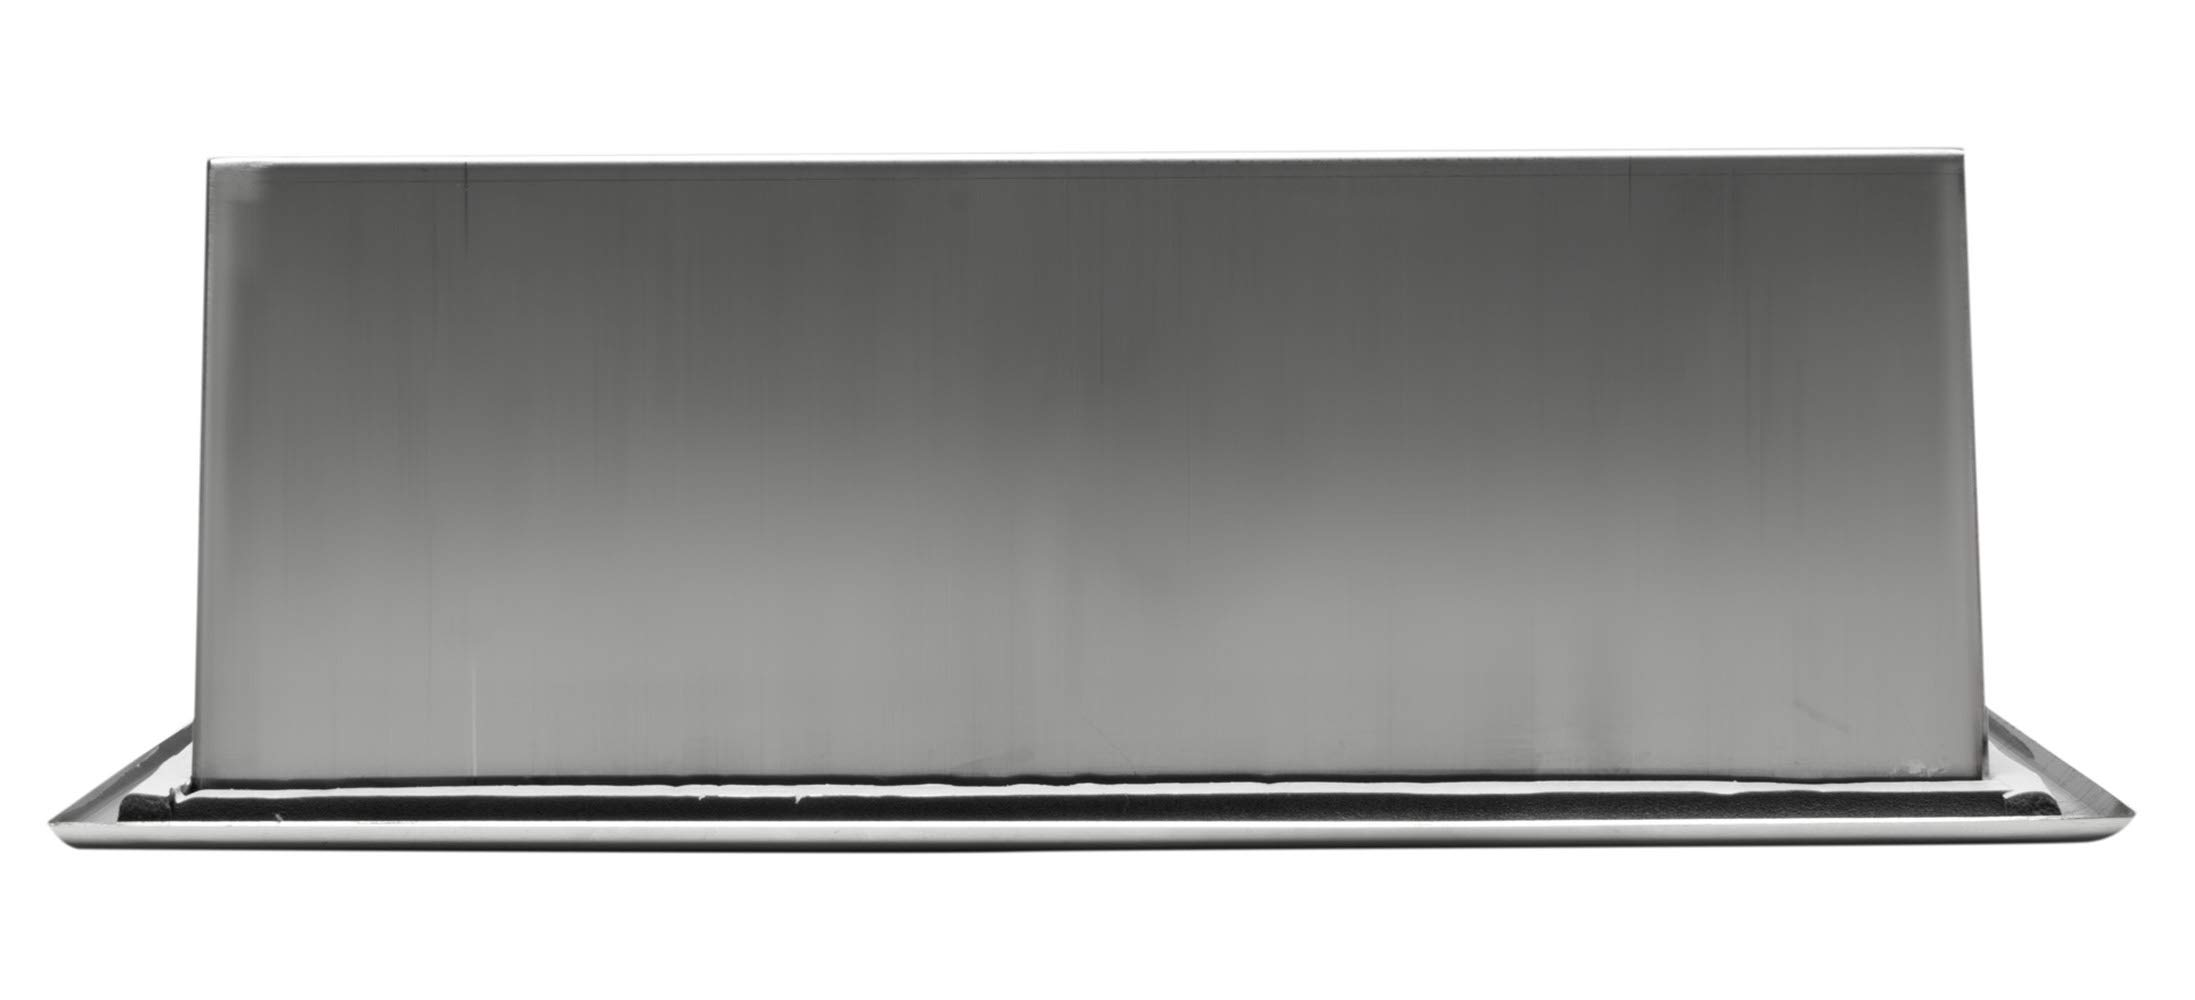 ALFI brand ABN2412-PSS Shower Niche, Polished Stainless Steel by Alfi (Image #5)